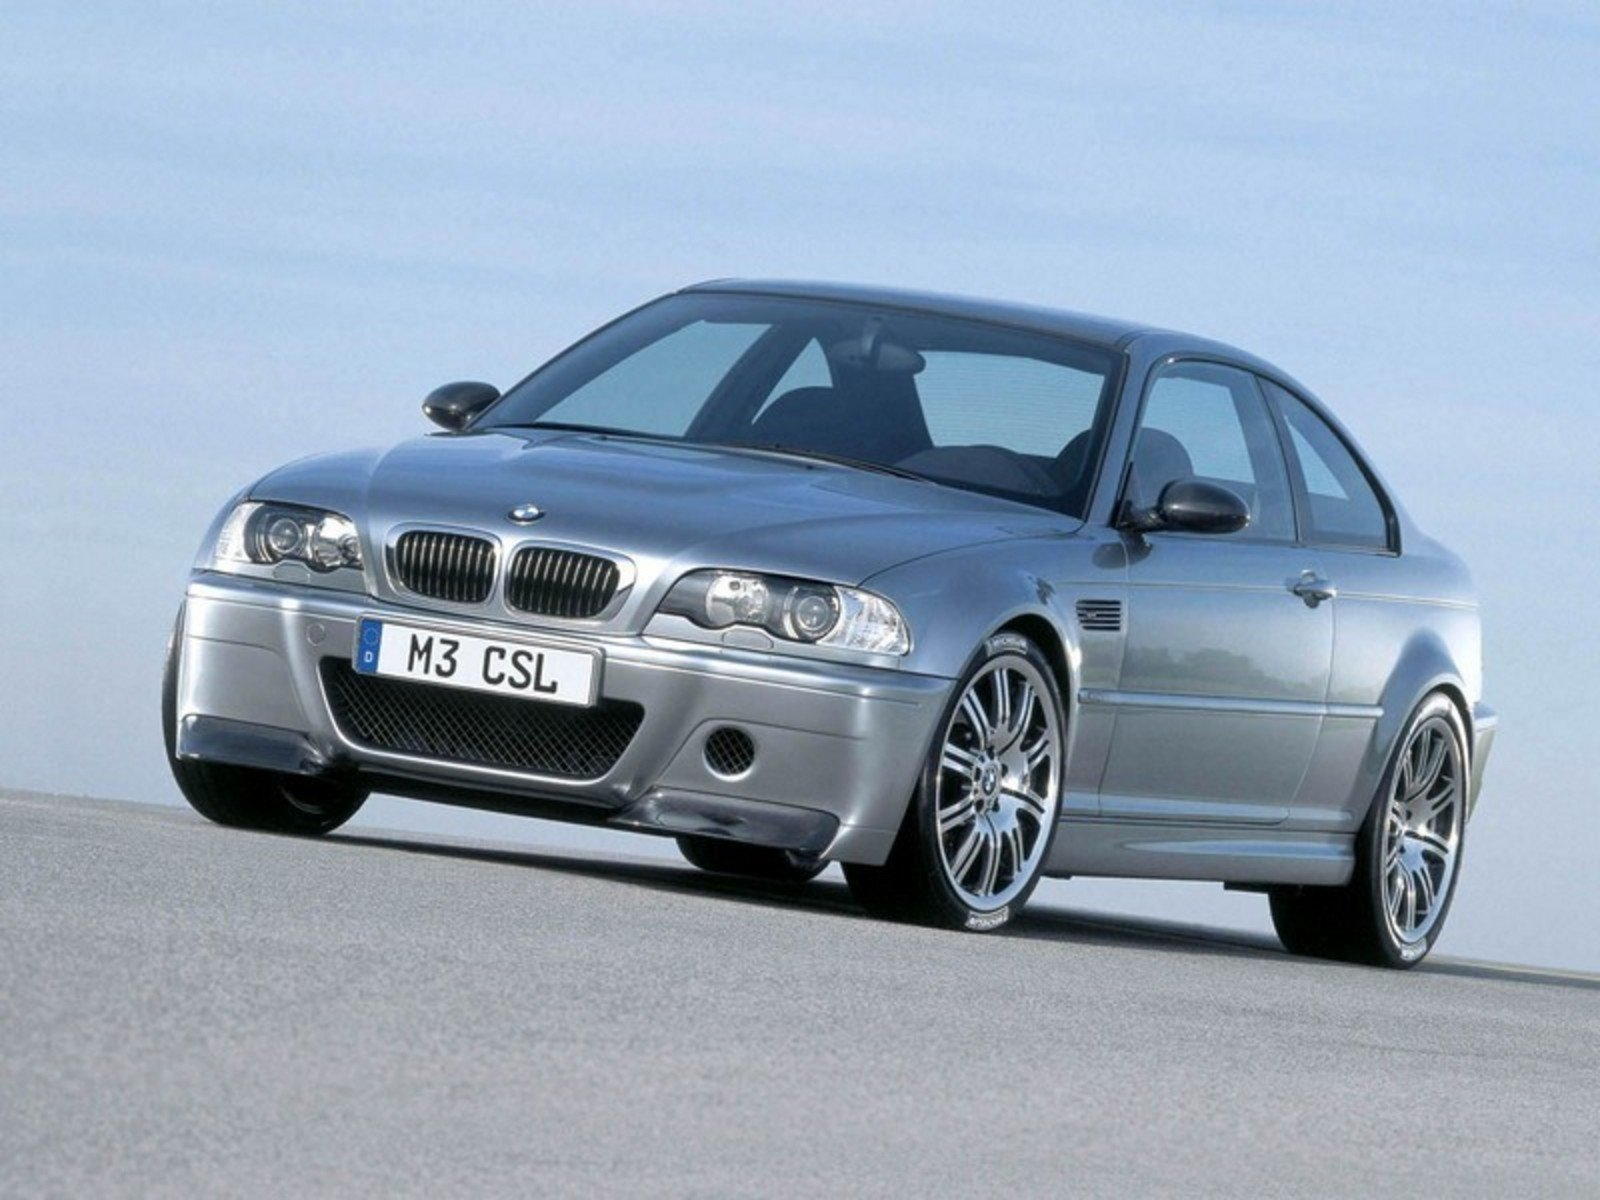 2005 bmw m3 e46 csl picture 30970 car review top speed. Black Bedroom Furniture Sets. Home Design Ideas